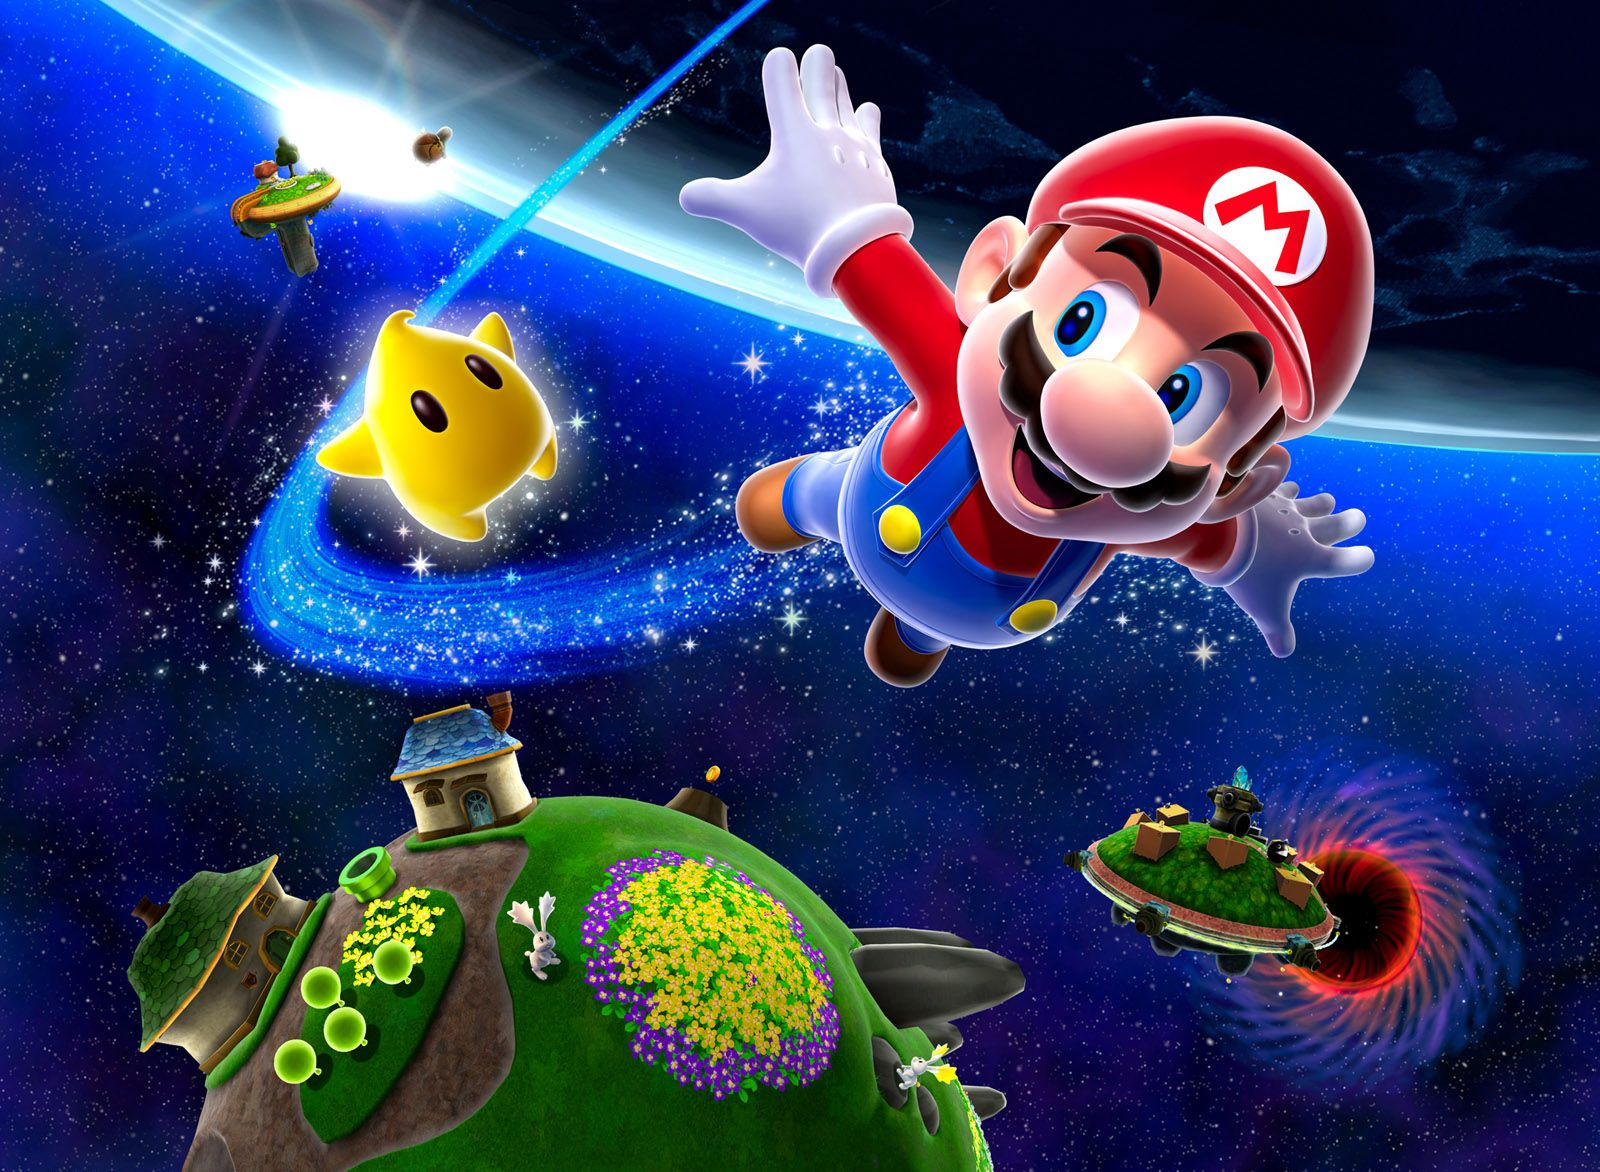 Mario Galaxy Wallpaper Juegos Super Mario Hermanos Súper